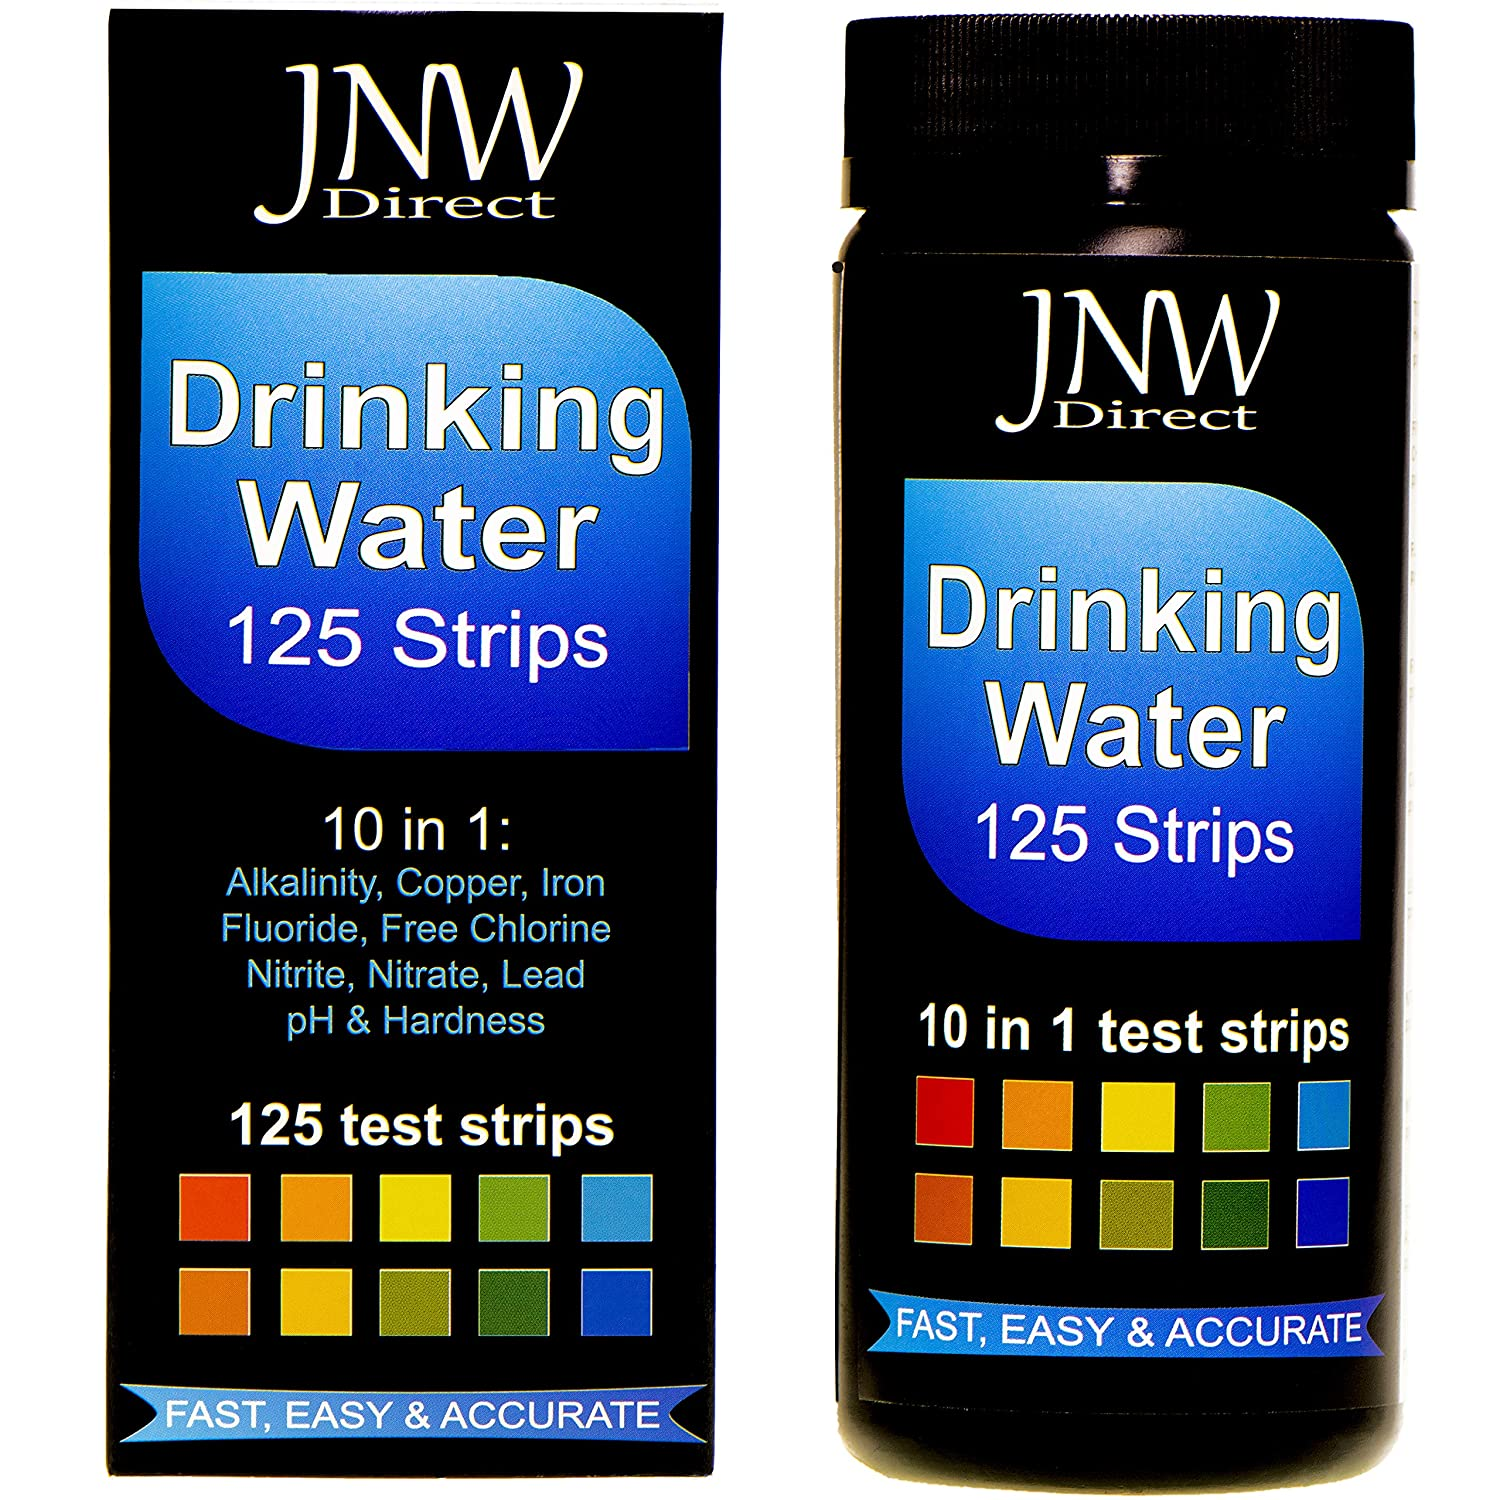 JNW Direct Drinking Water Test Strips 10 in 1, Best Kit for Accurate Water Quality Testing at Home, 125 Strips MEGA Pack, Easy to Read & Instant Results (Packaging May Vary)